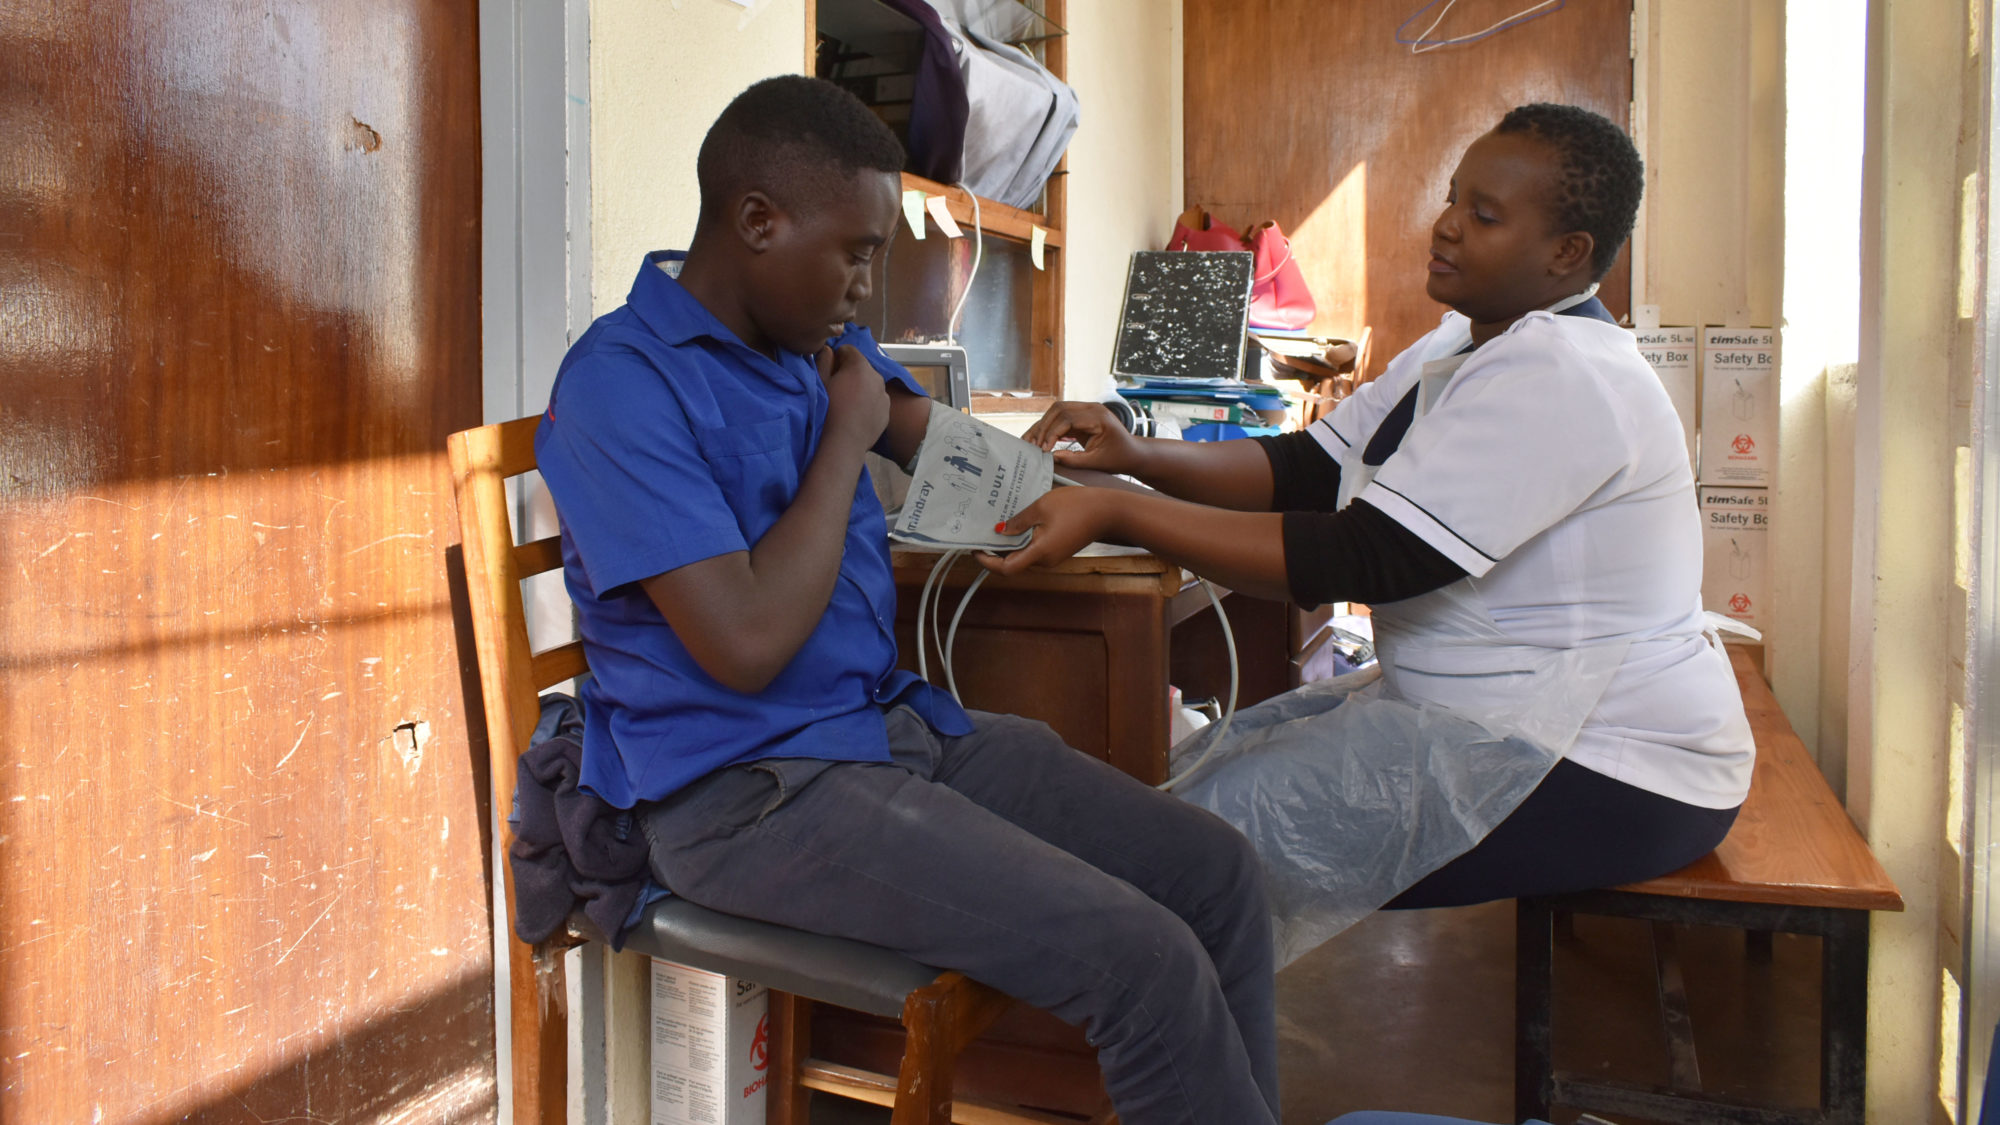 Asekanadziwa Mtangwanika, a nurse, takes a cancer patient's blood pressure at Kamuzu Central Hospital in Lilongwe, Malawi. (Photo courtesy of UNC Project Malawi)